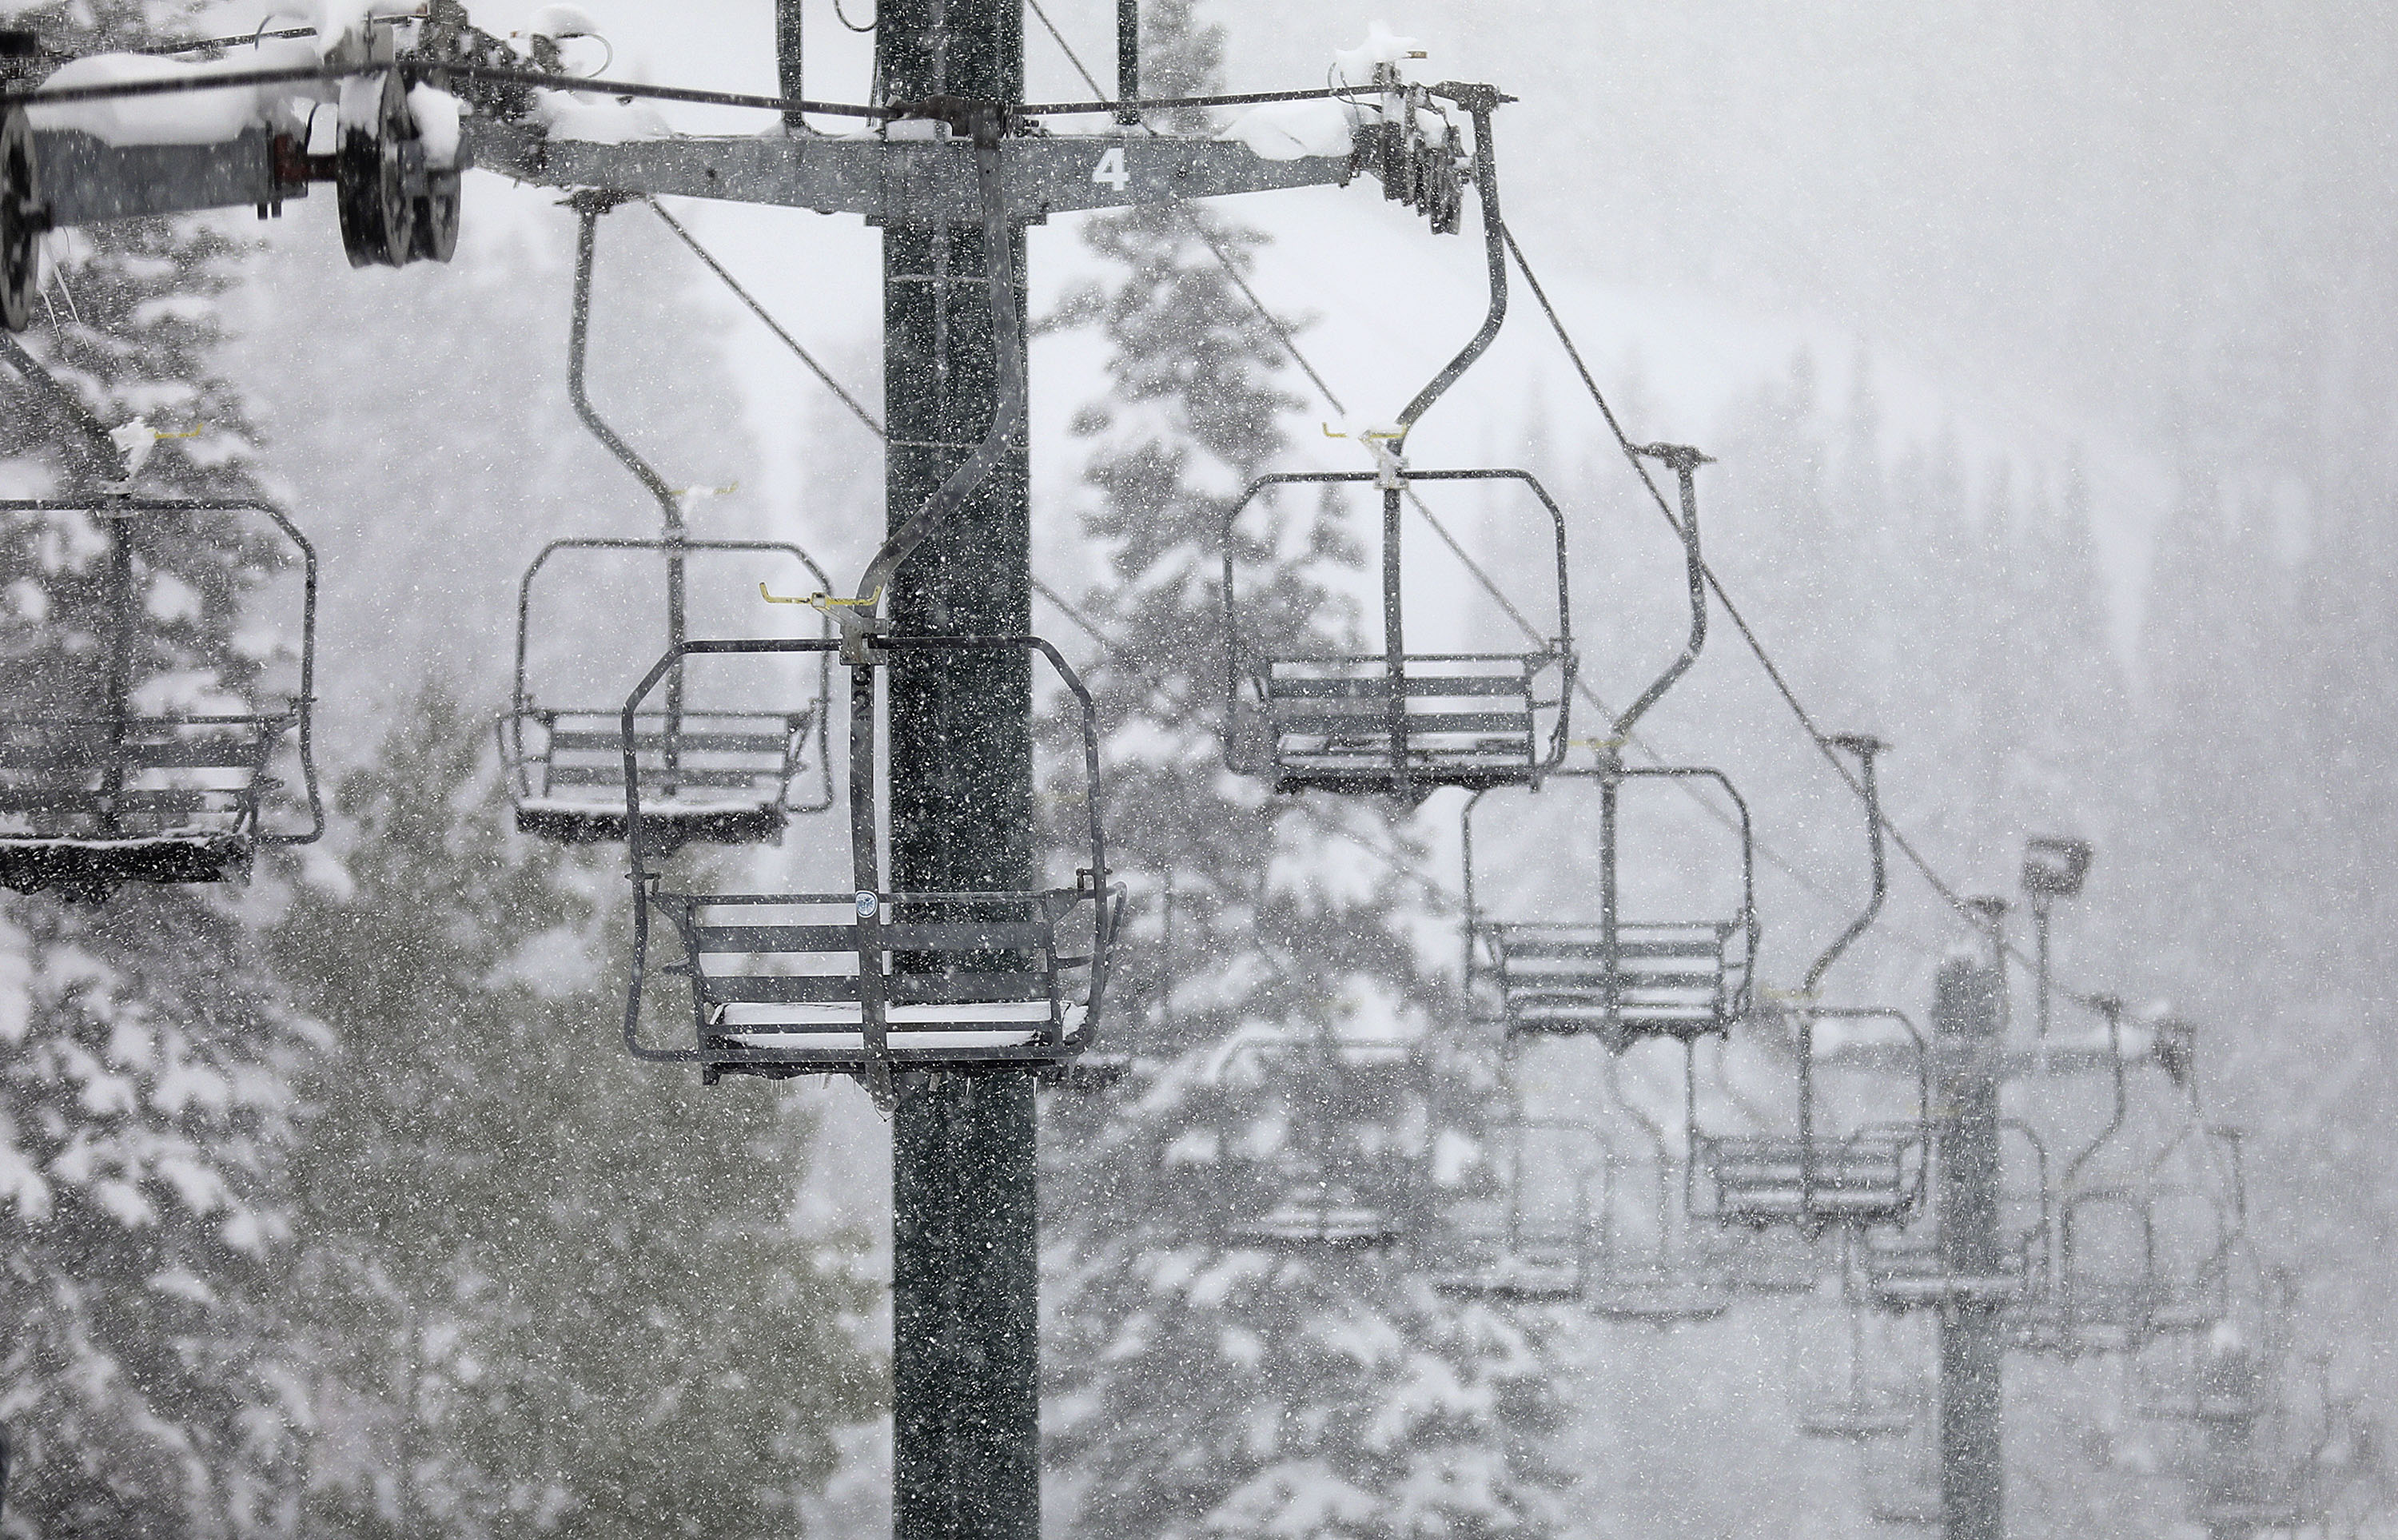 The Chickadee lift is pictured at Snowbird in Little Cottonwood Canyon on Thursday, Oct. 14, 2021.